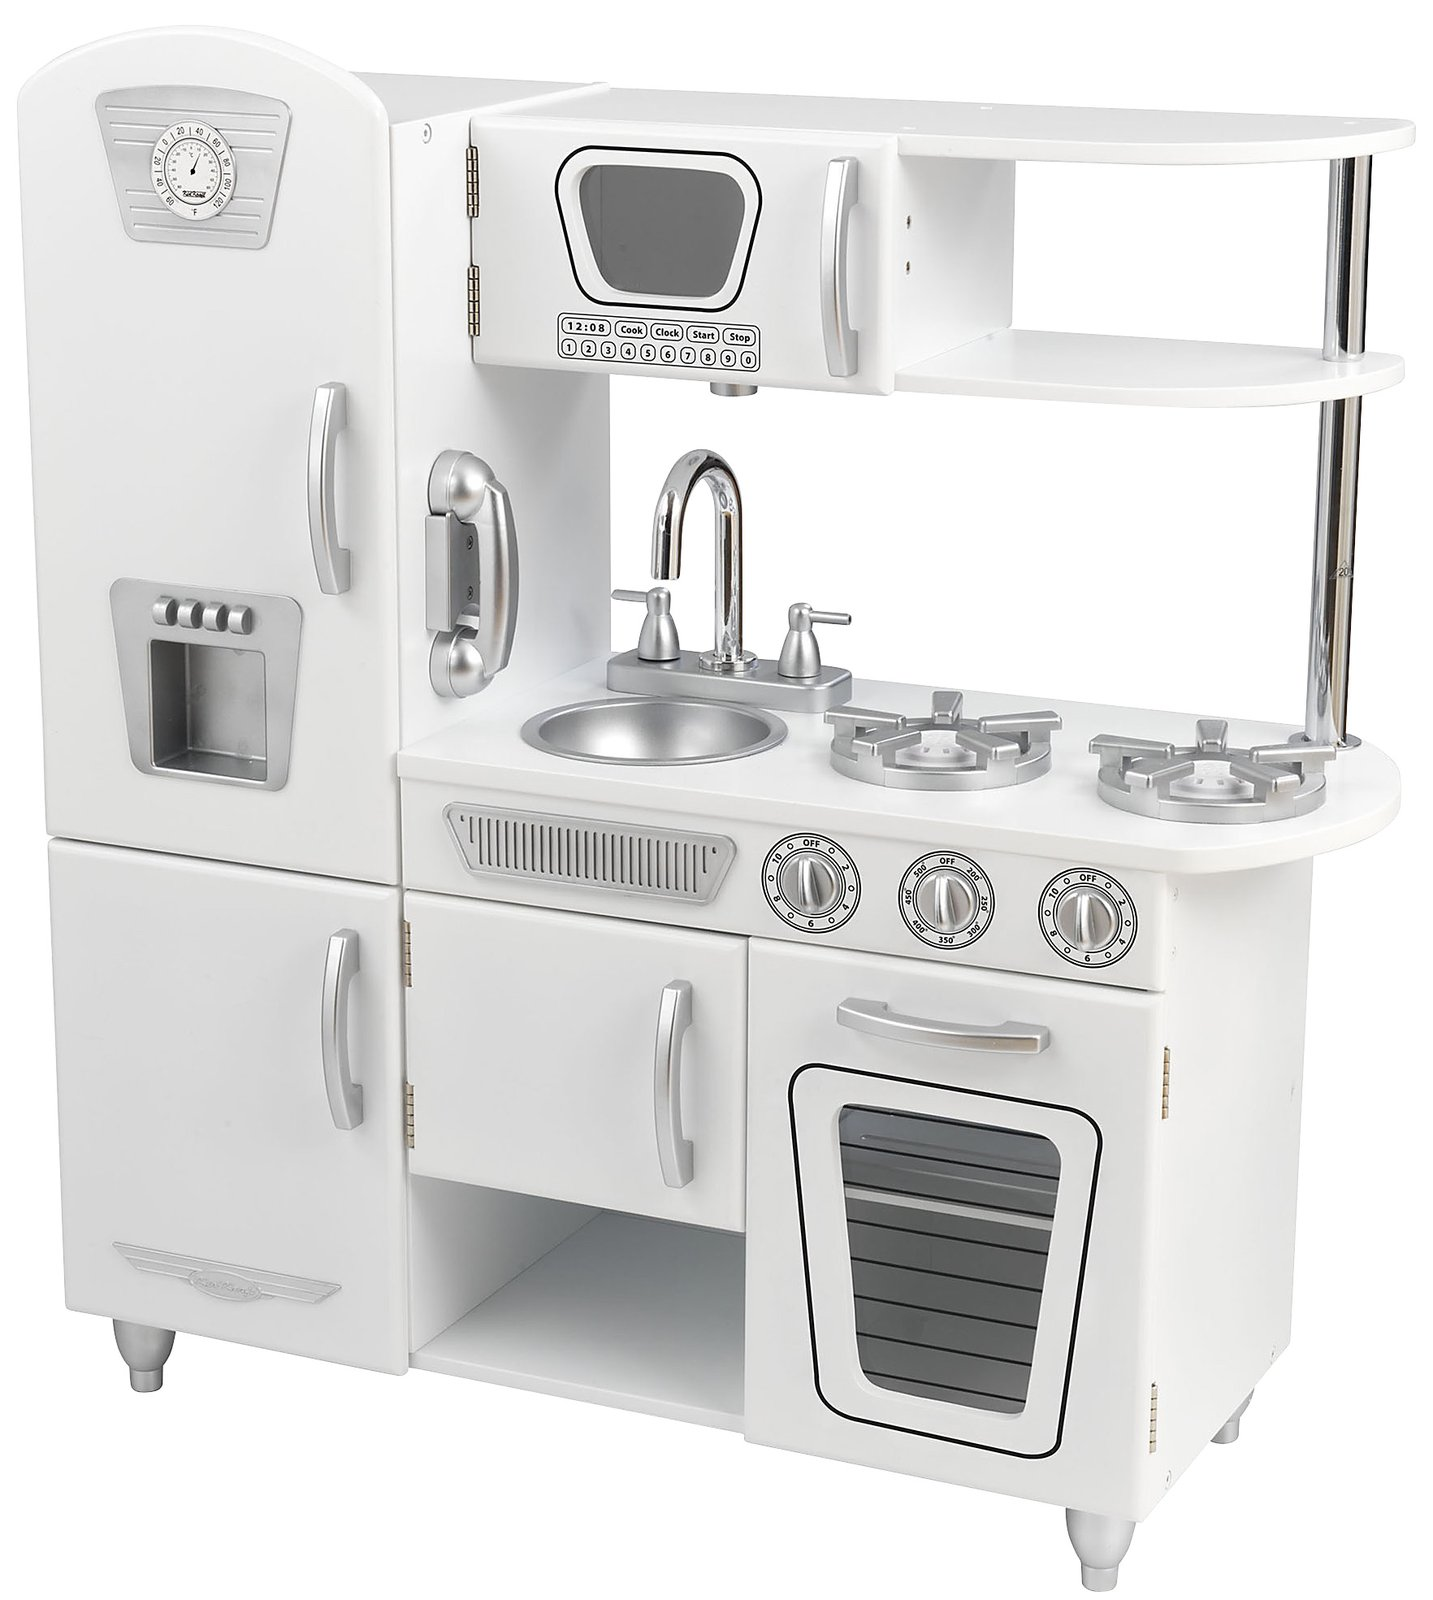 mad for midcentury midcentury modern play kitchen - midcentury modern play kitchen